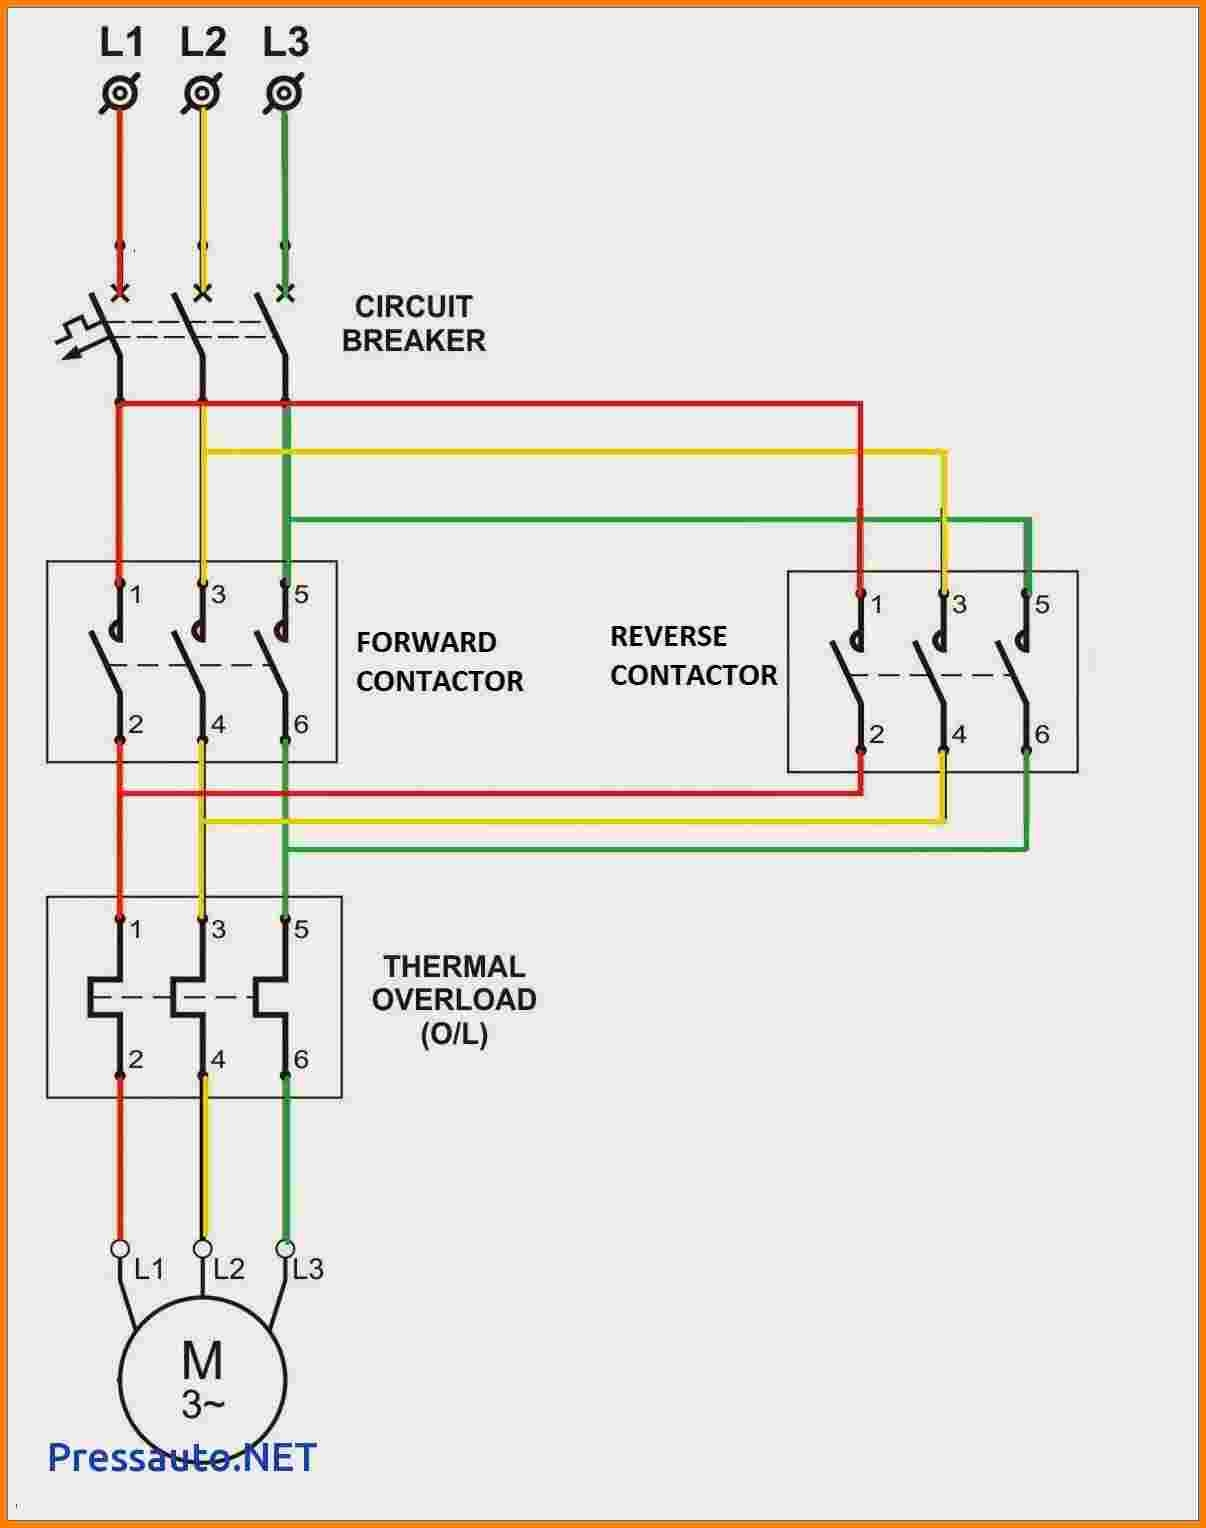 motor starter wiring diagram start stop | free wiring diagram 3 wire 3 phase vector diagram 3 phase wire diagram italian #6